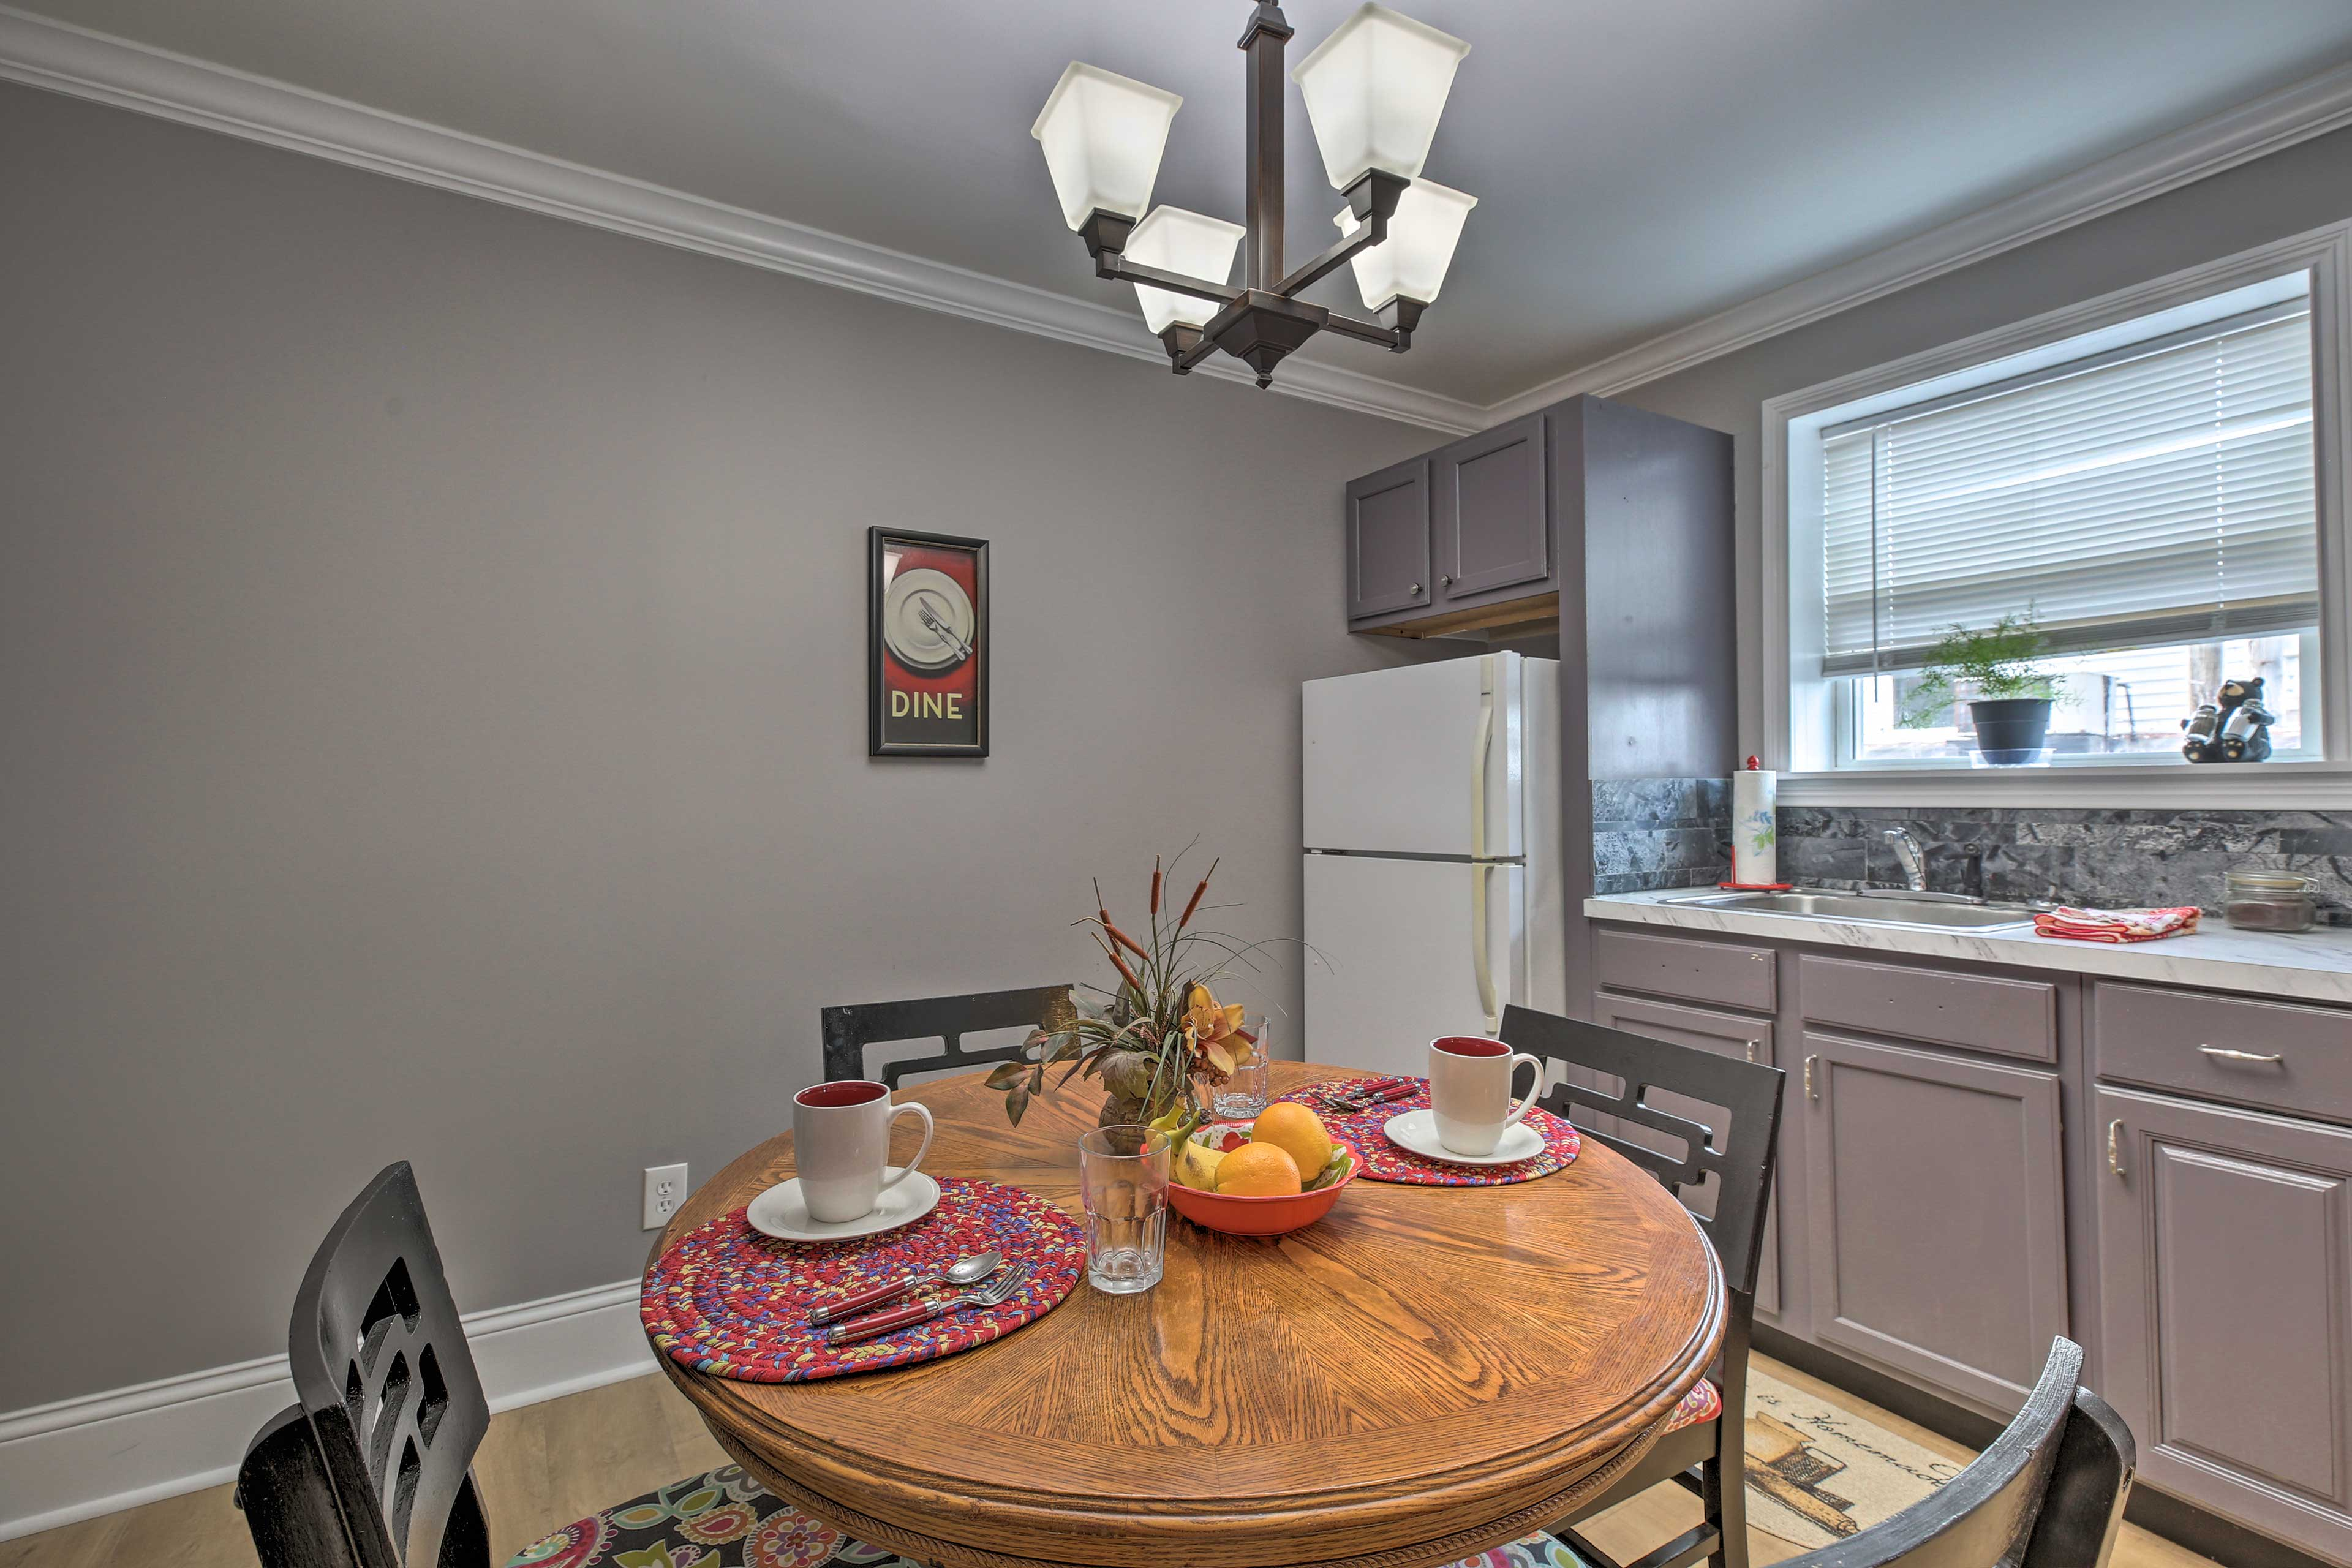 Sip a glass of wine or savor a delicious meal around the 4-person dining table.